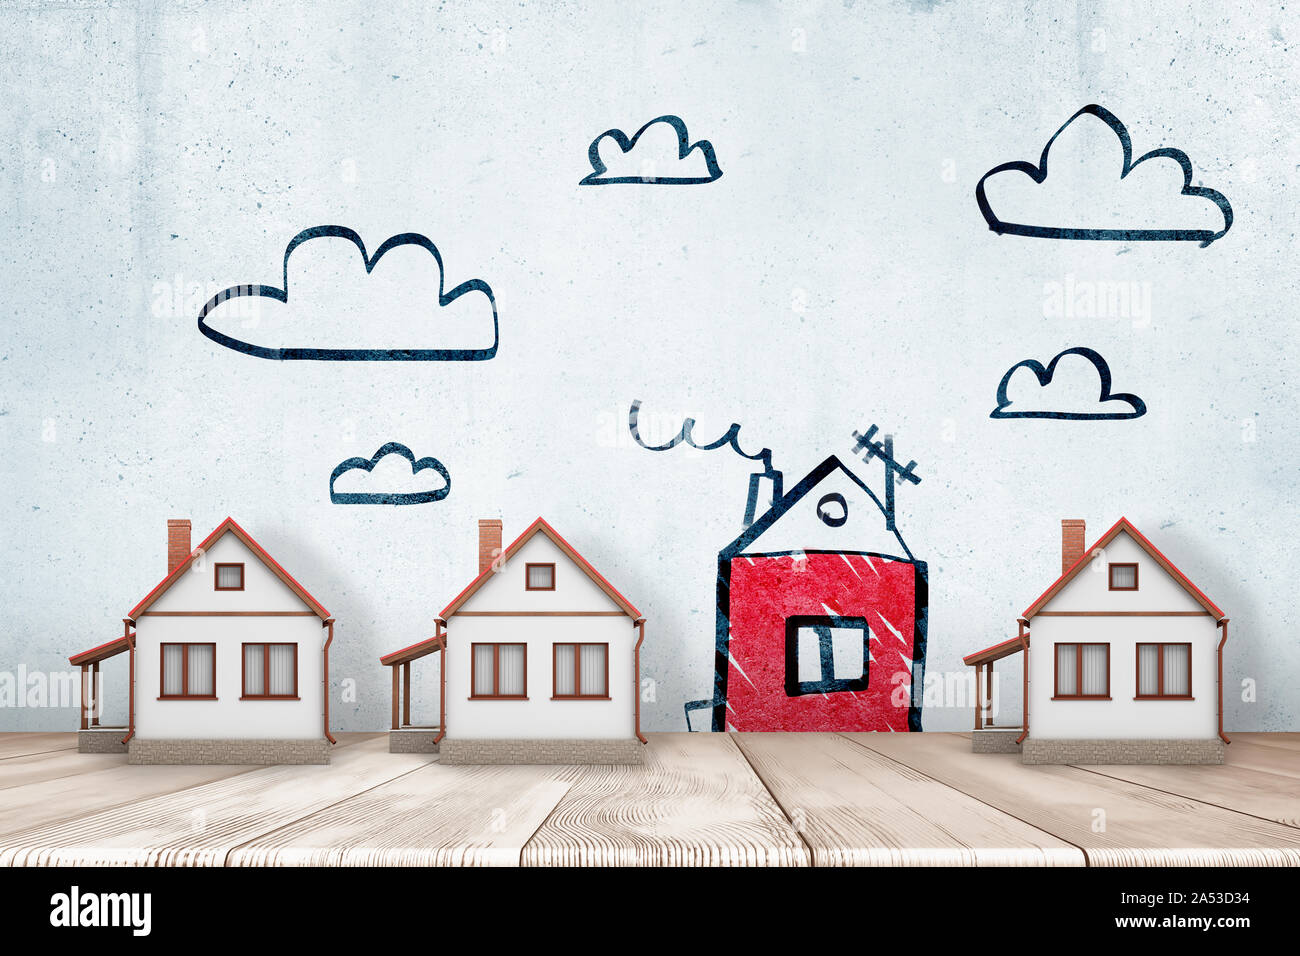 3d rendering of 3 white private houses on white wooden floor with one red house and clouds drawn on the wall Stock Photo